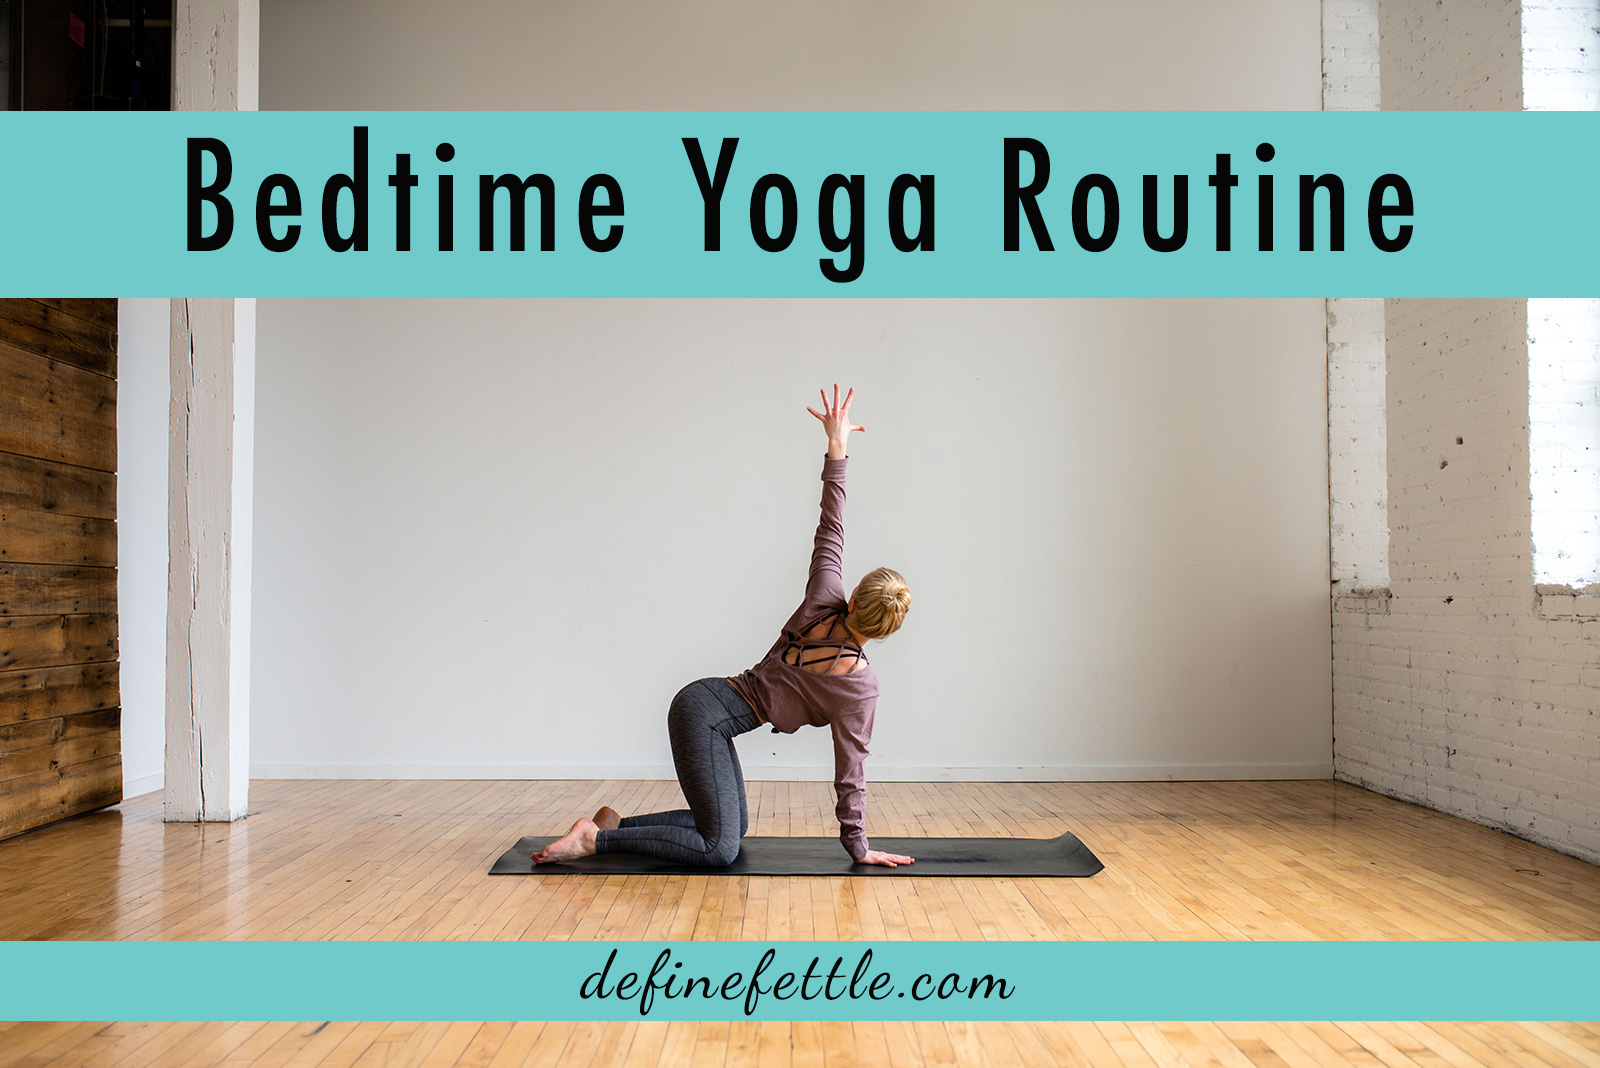 Bedtime Yoga Routine, Yoga Routine, Beginner Yoga, Define Fettle, Fitness Blogger, Yoga, Home Workout, 20 Minute Home Workout